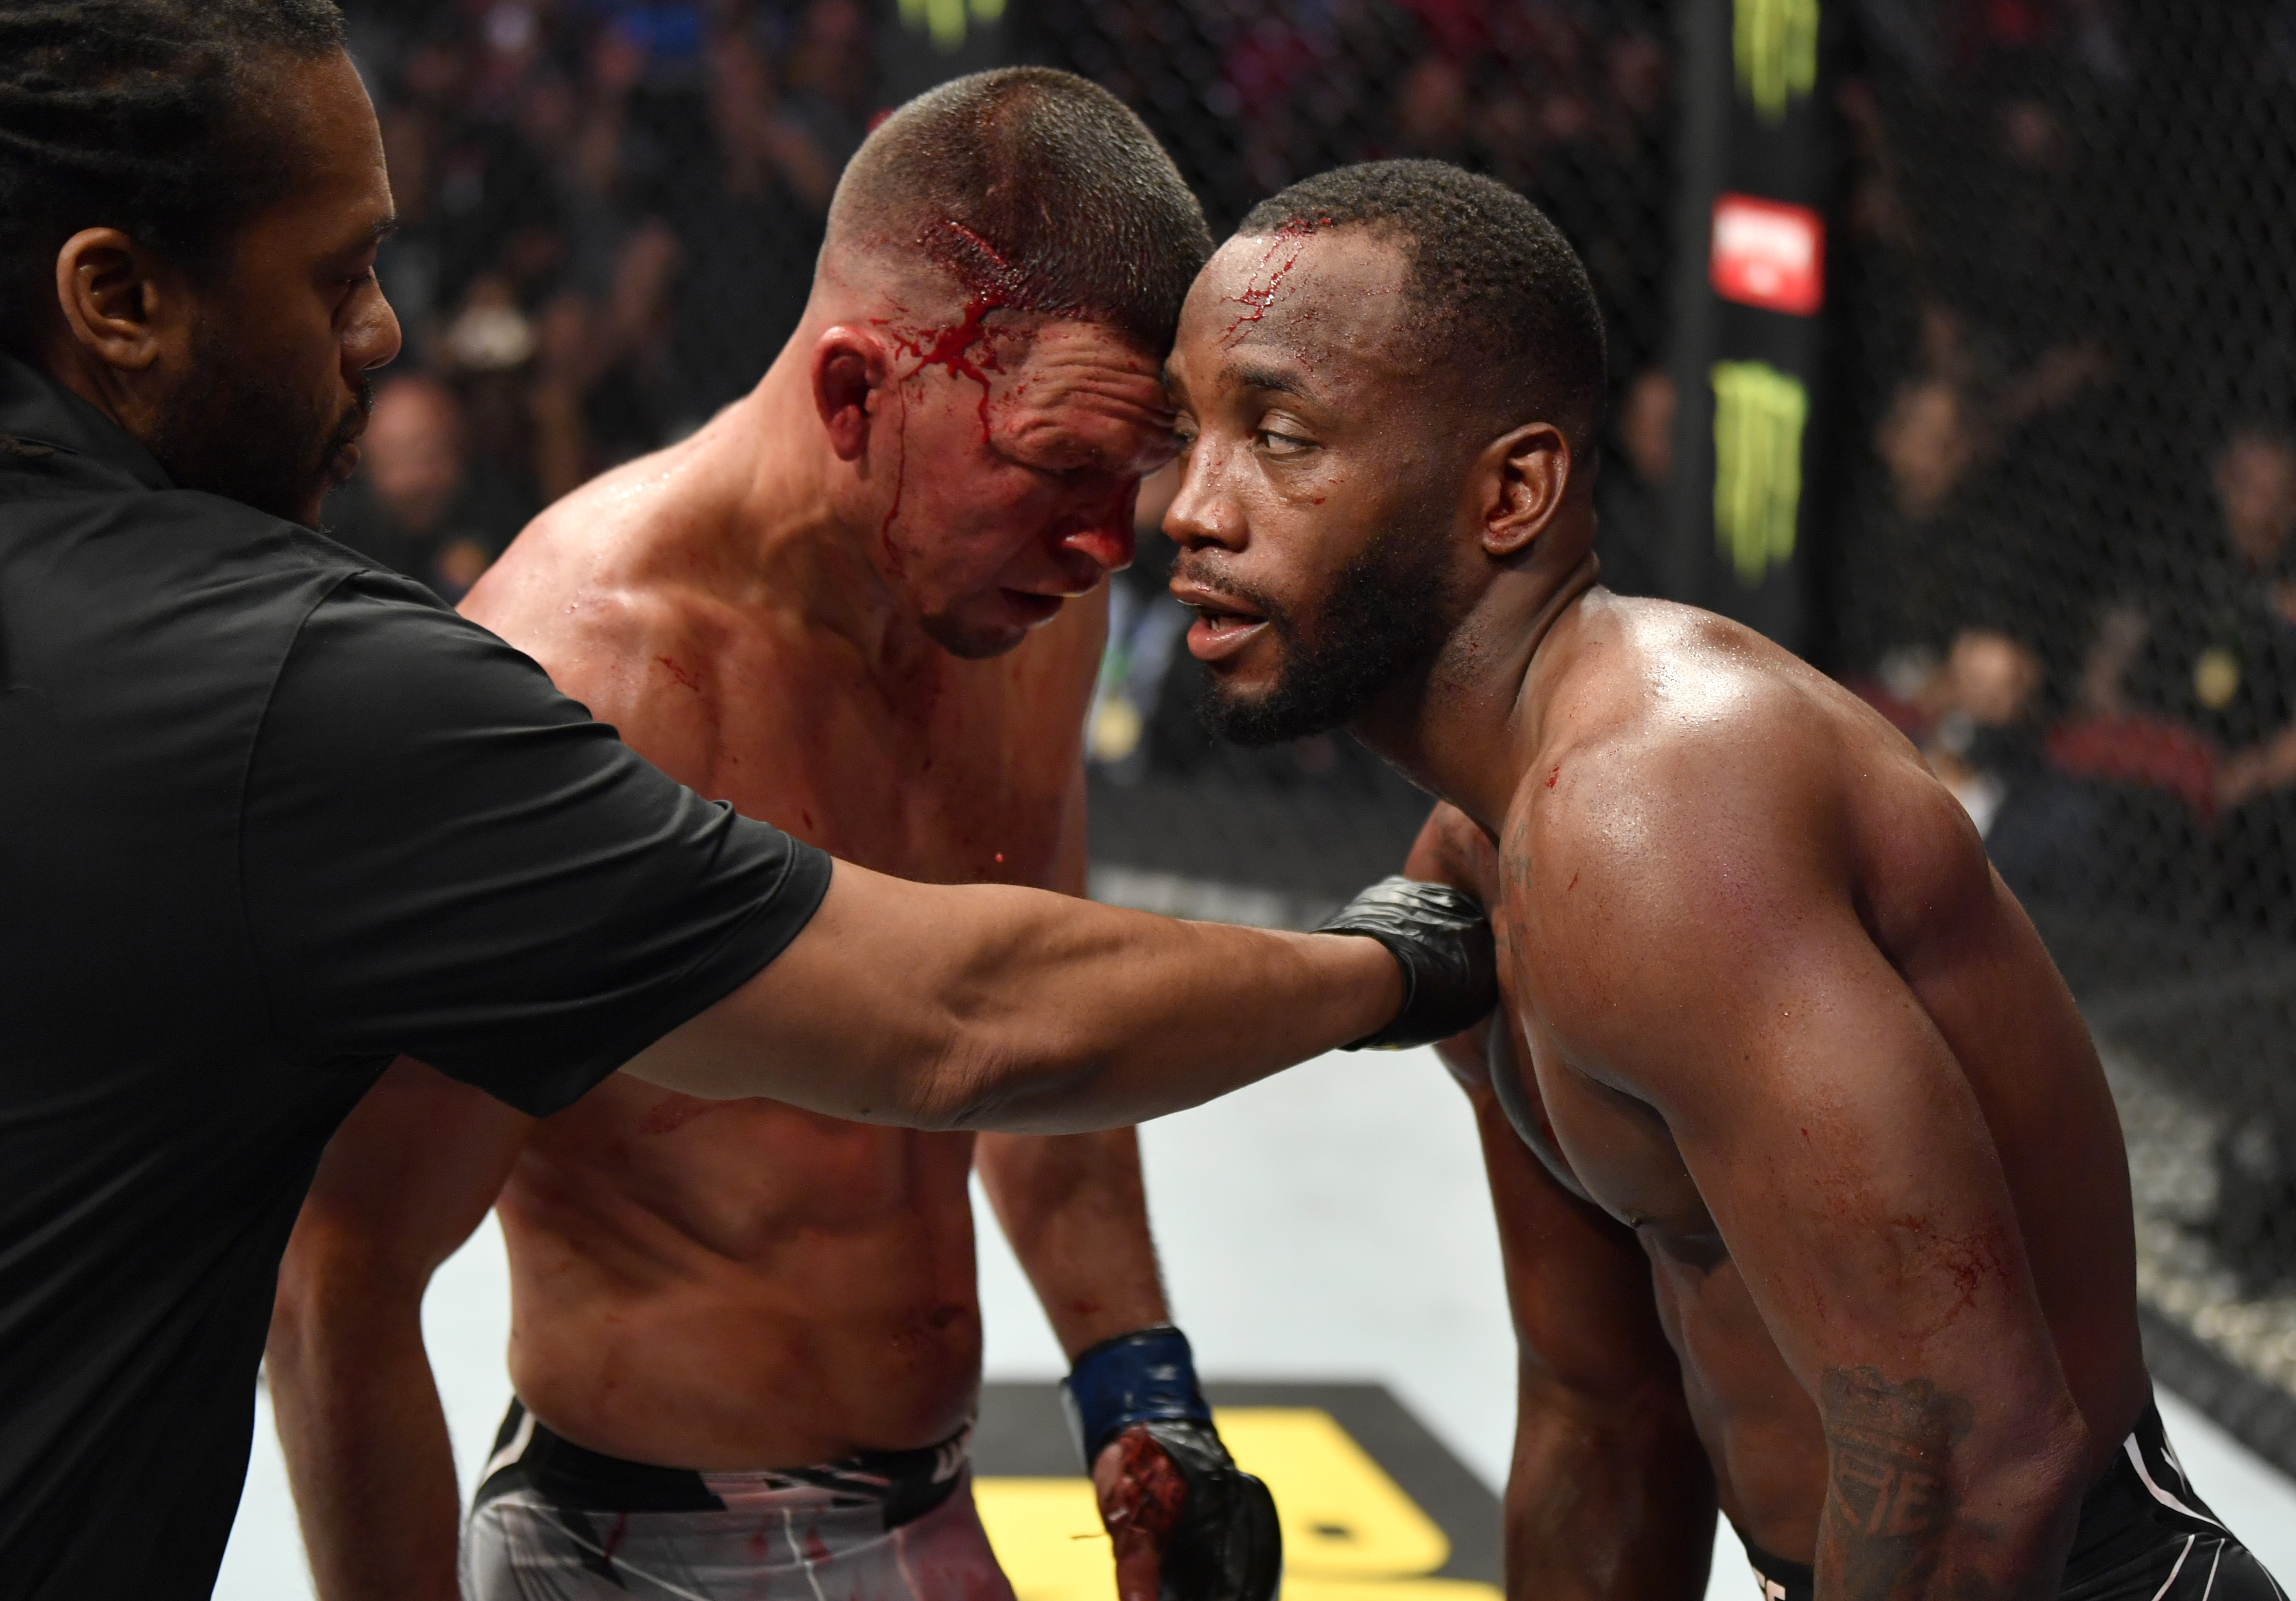 Leon Edwards and Nate Diaz during their fight at UFC 263.